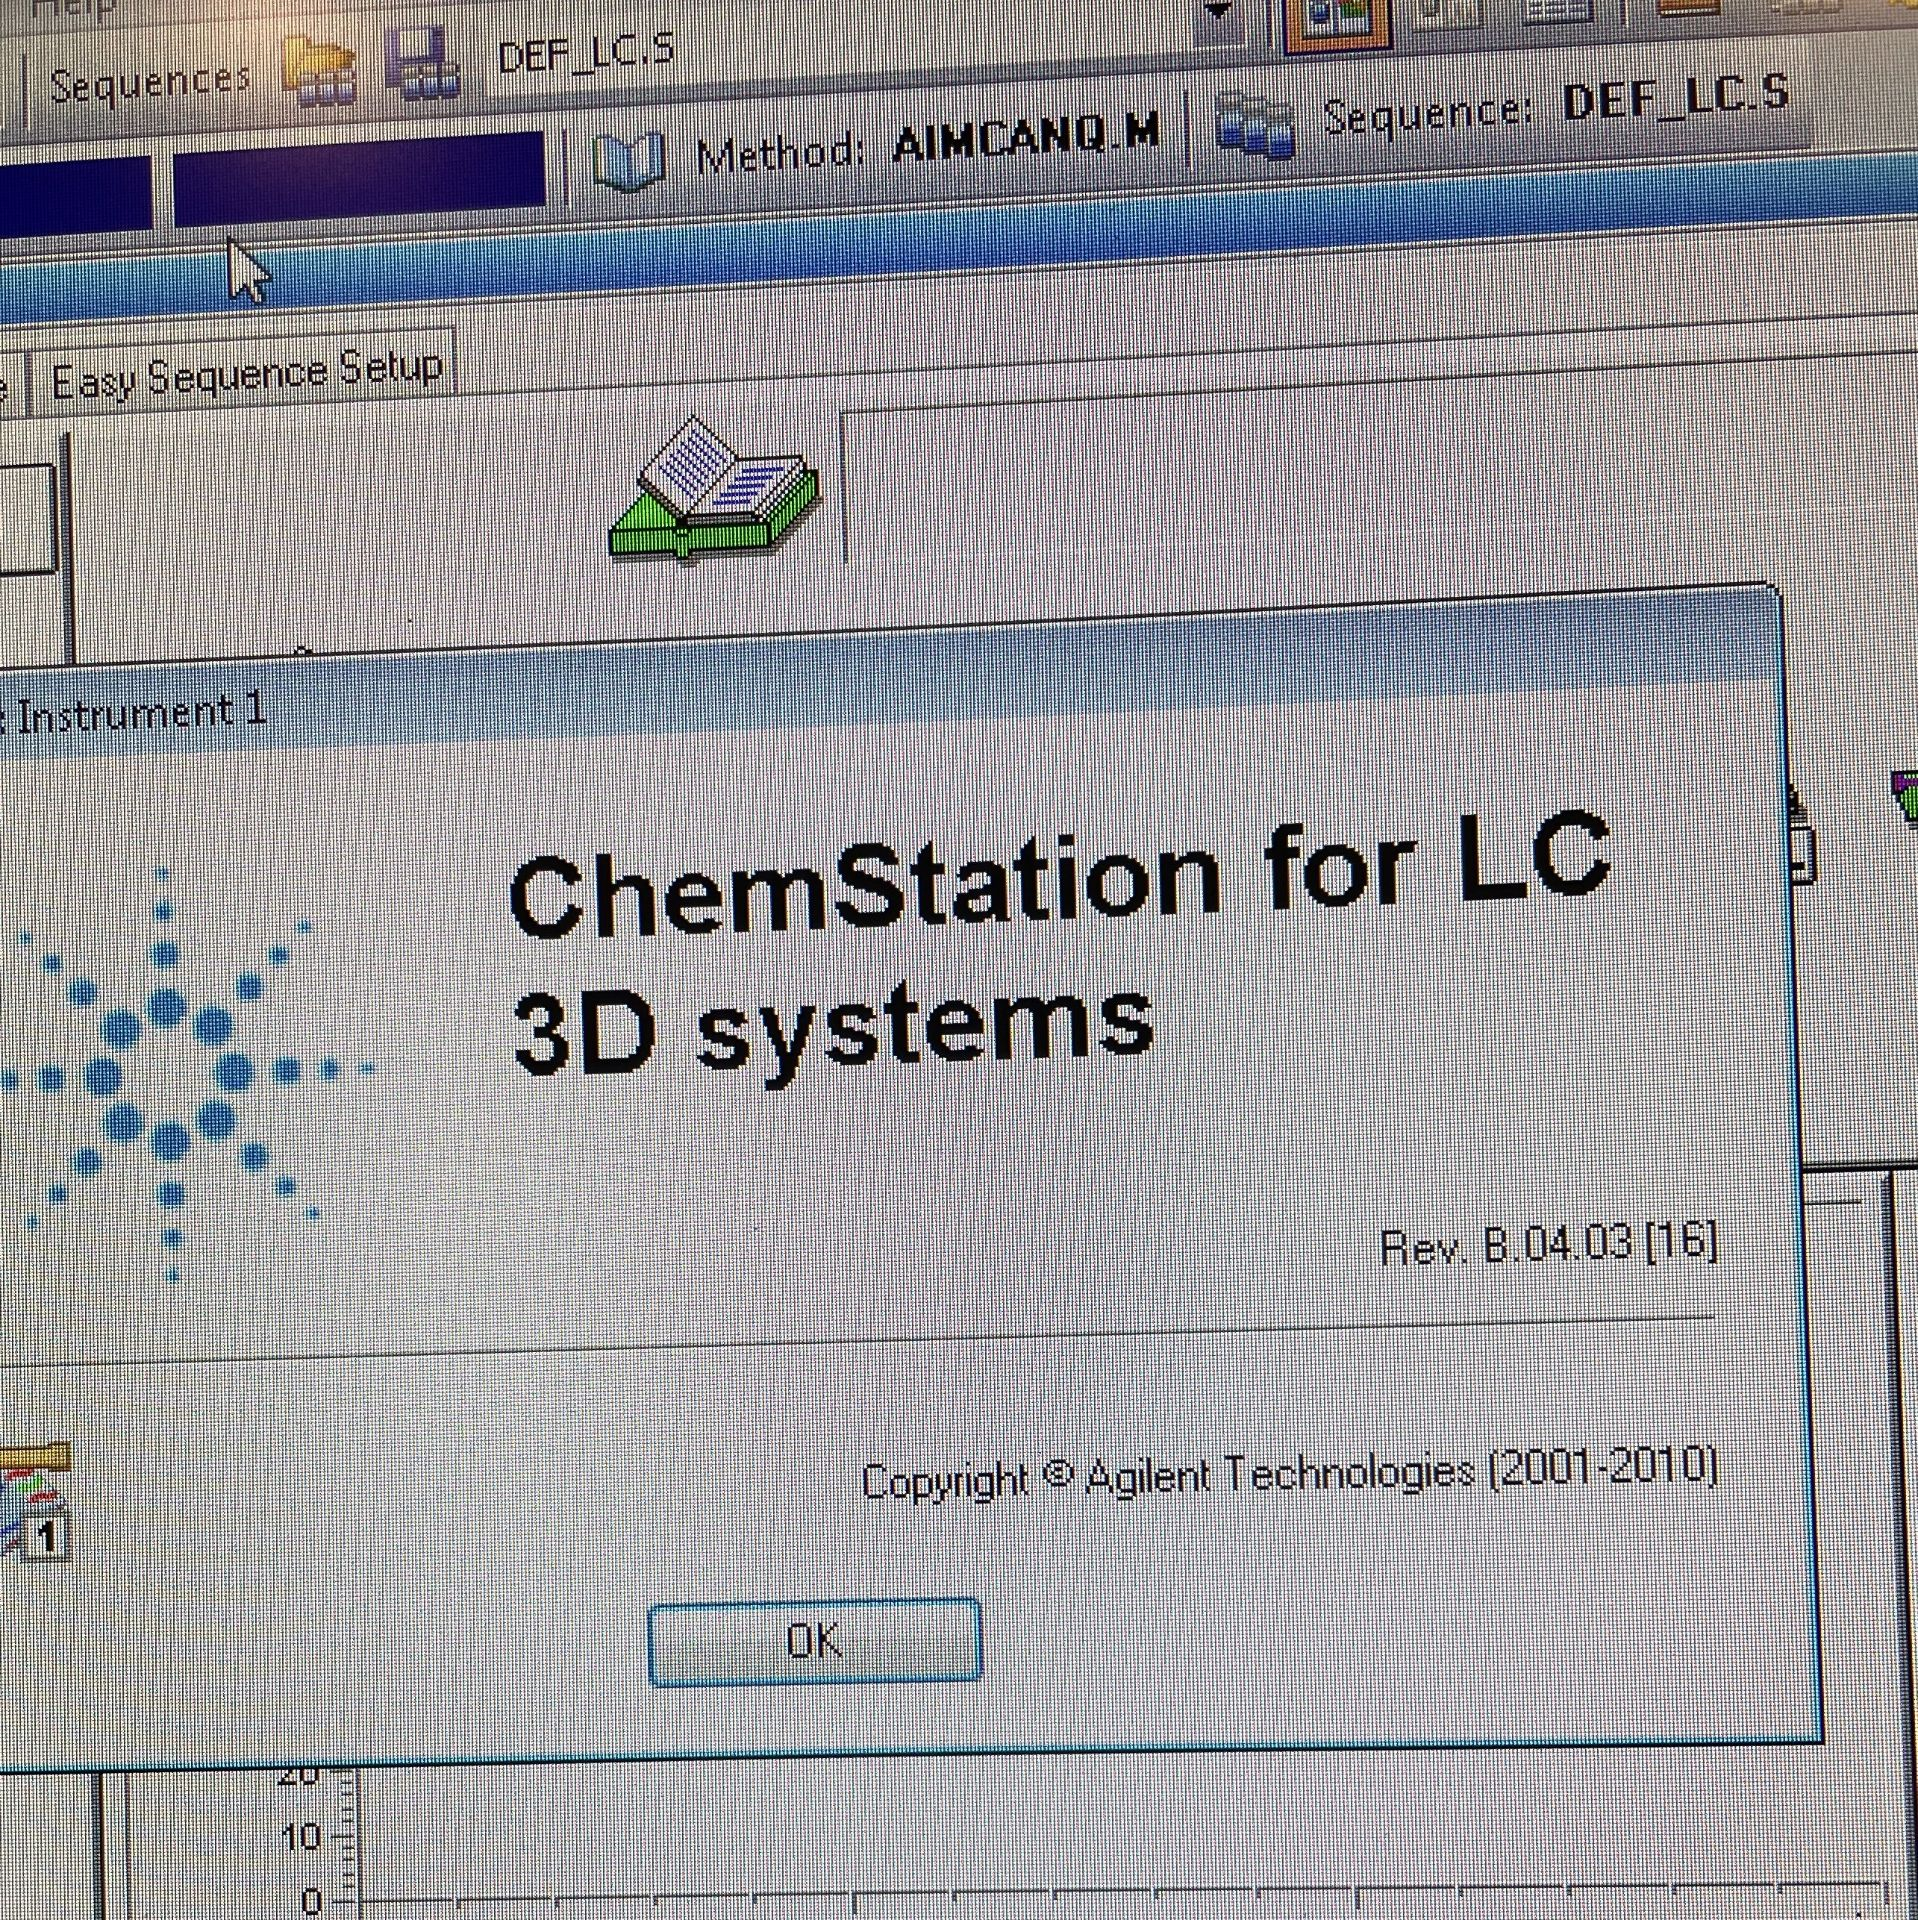 Used Agilent 1100 HPLC. Model 1100. Fully complete & functional cannabinoid potency testing system. - Image 21 of 22